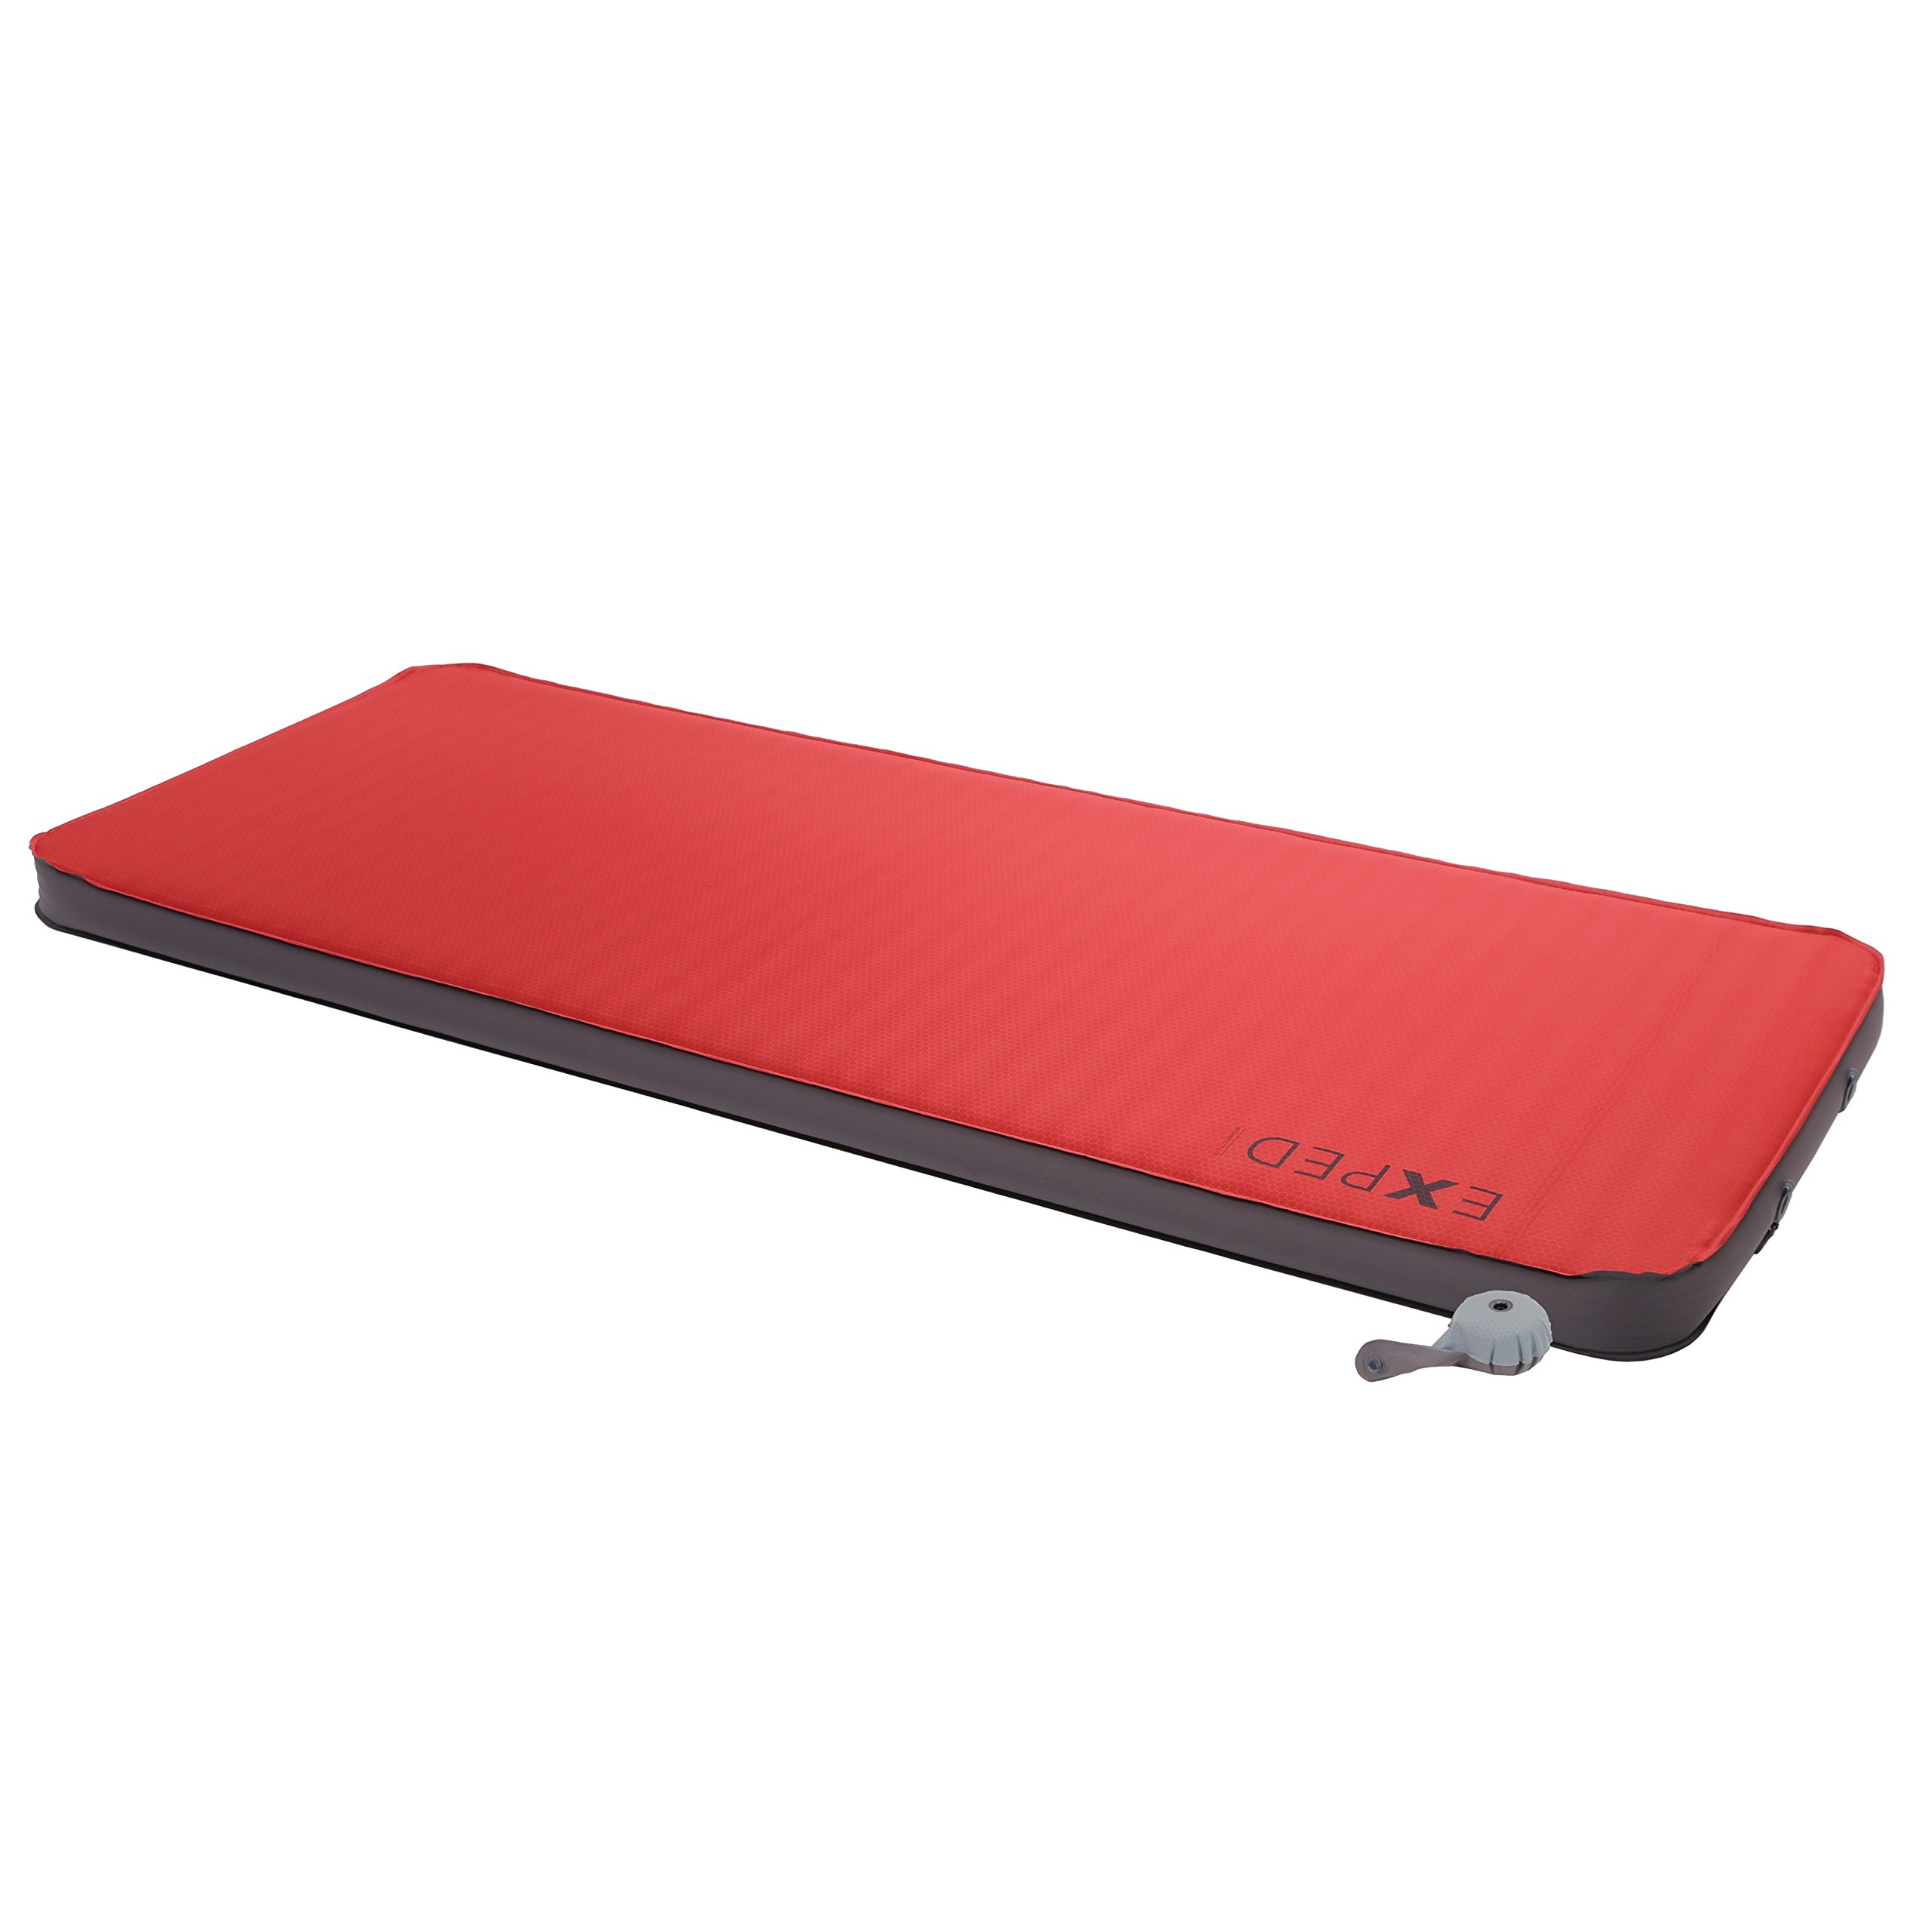 Exped Megamat 10 Insulated Self-Inflating Sleeping Pad, Ruby Red, Large Extra Wide by Exped